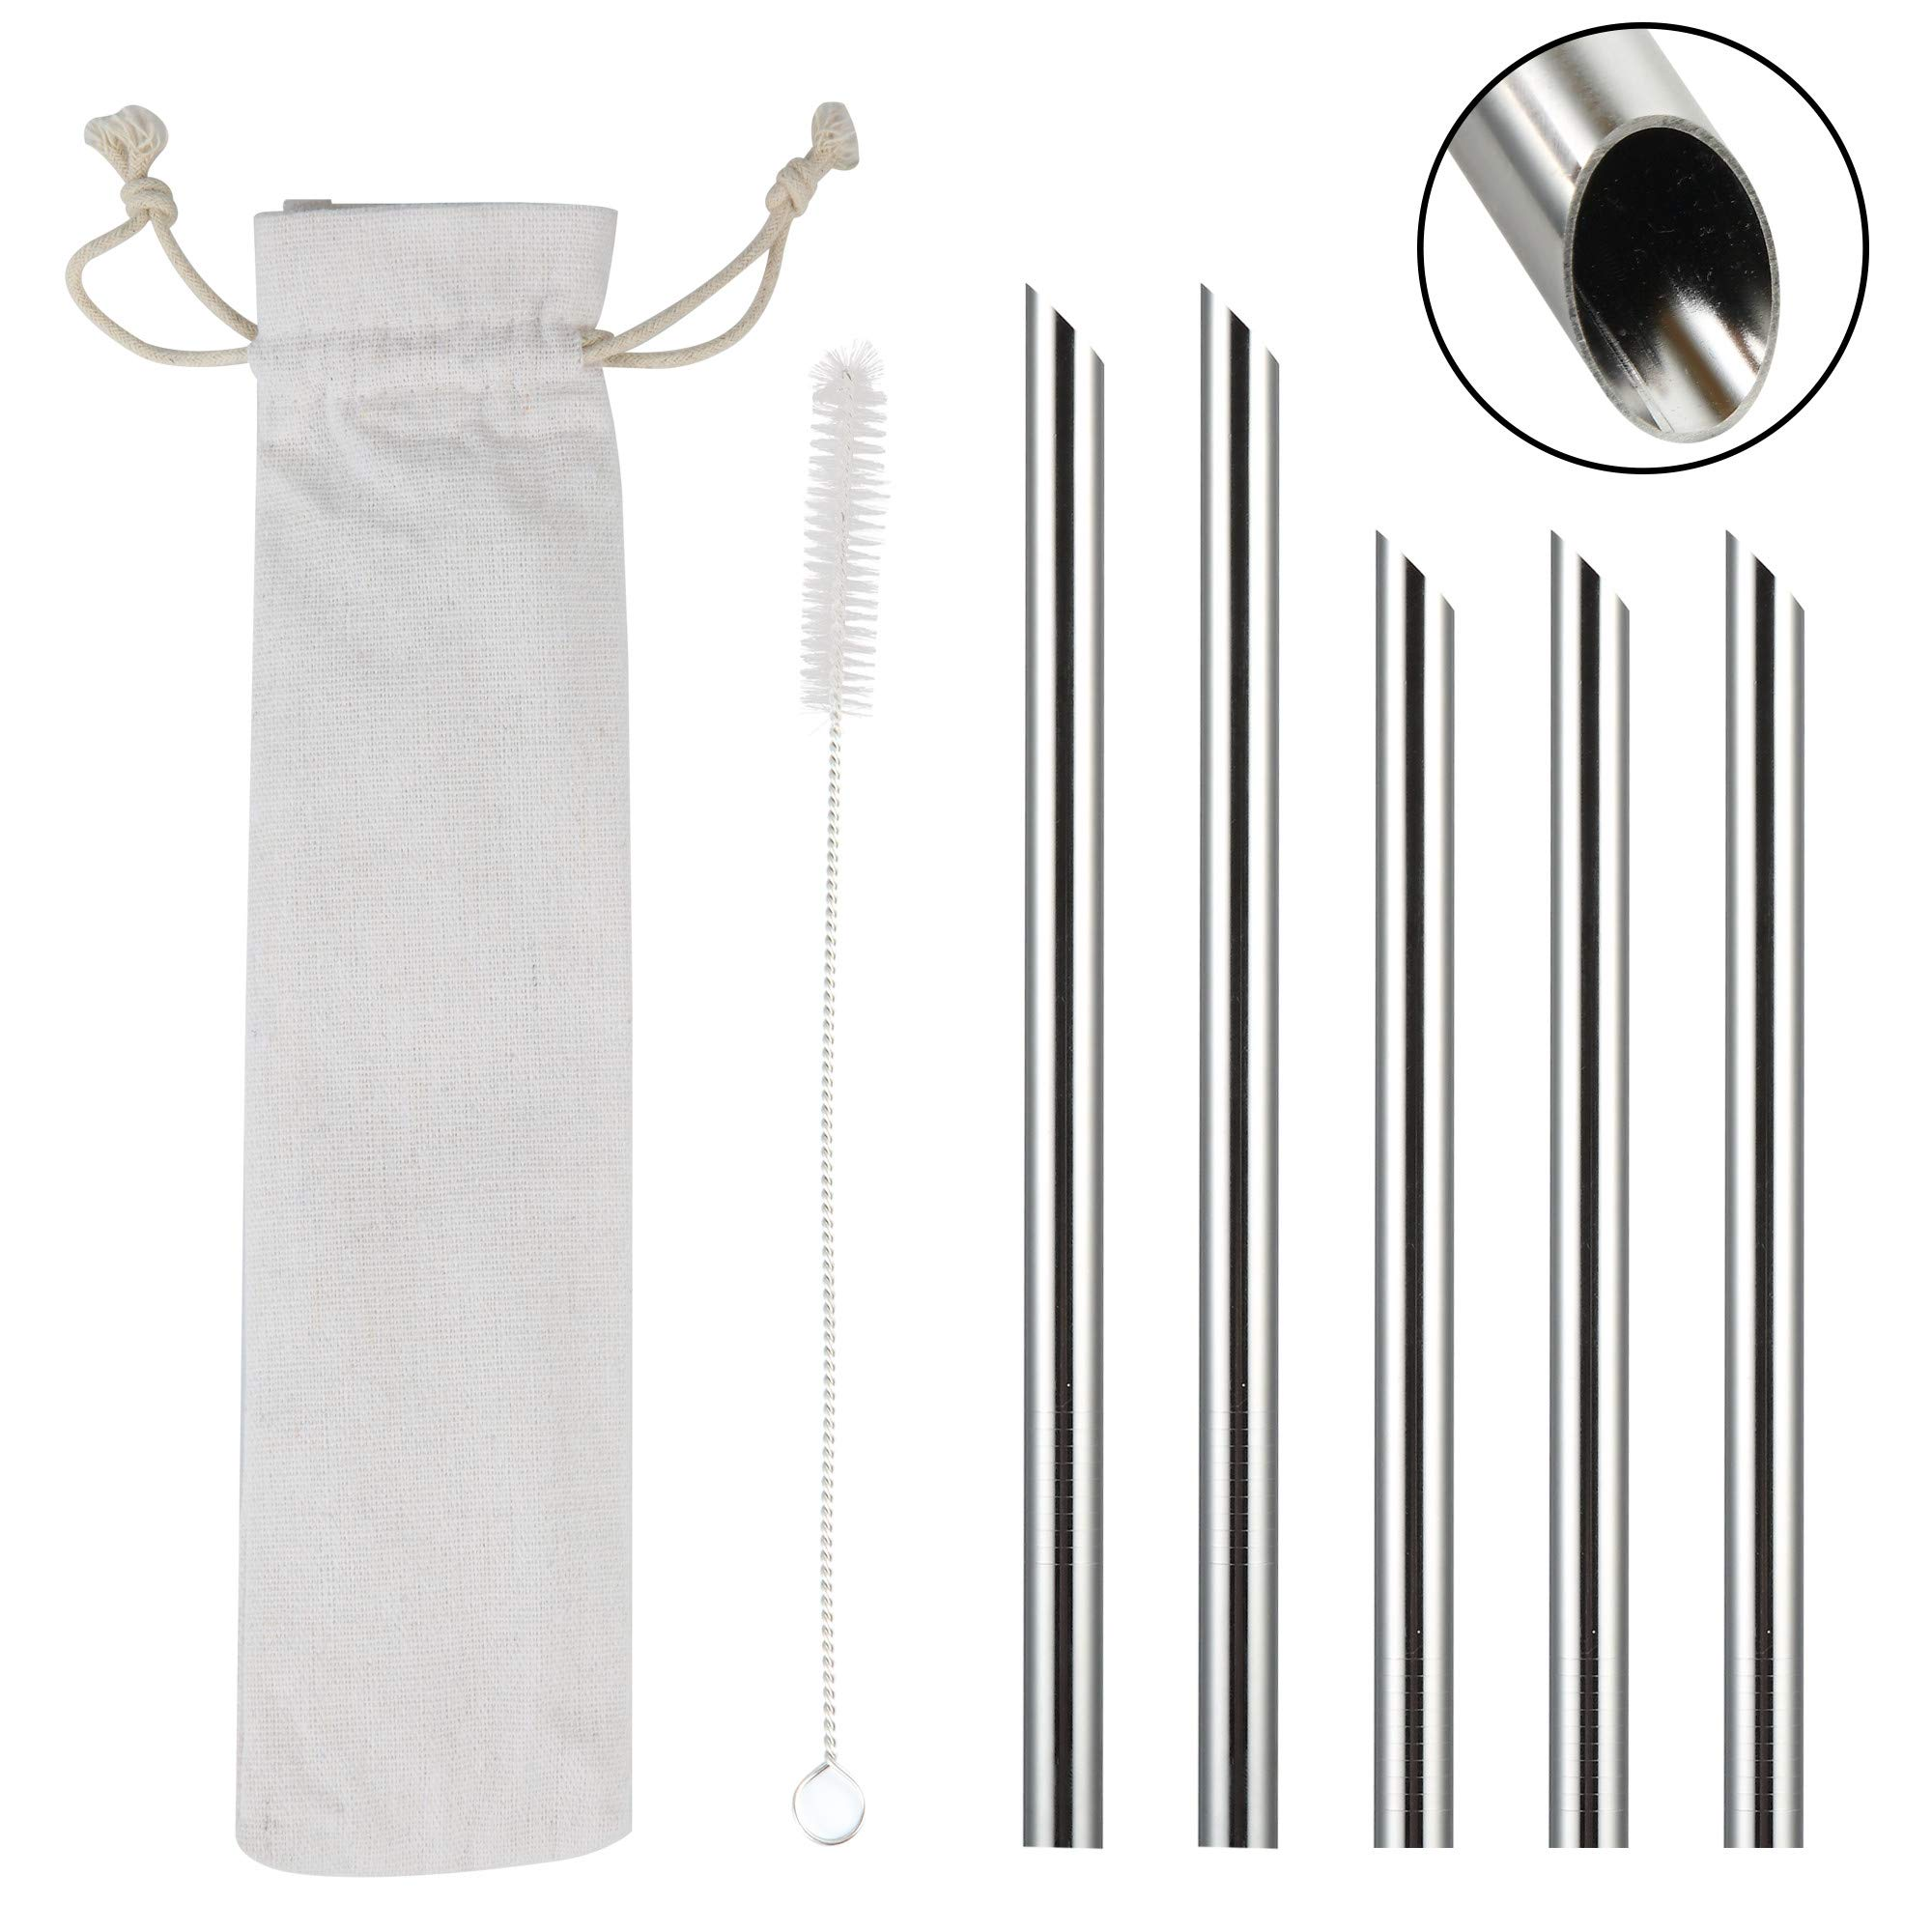 Eco Friendly Reusable Straw Set 2X Wide Smoothie 2X /& Stainless Steel Straws